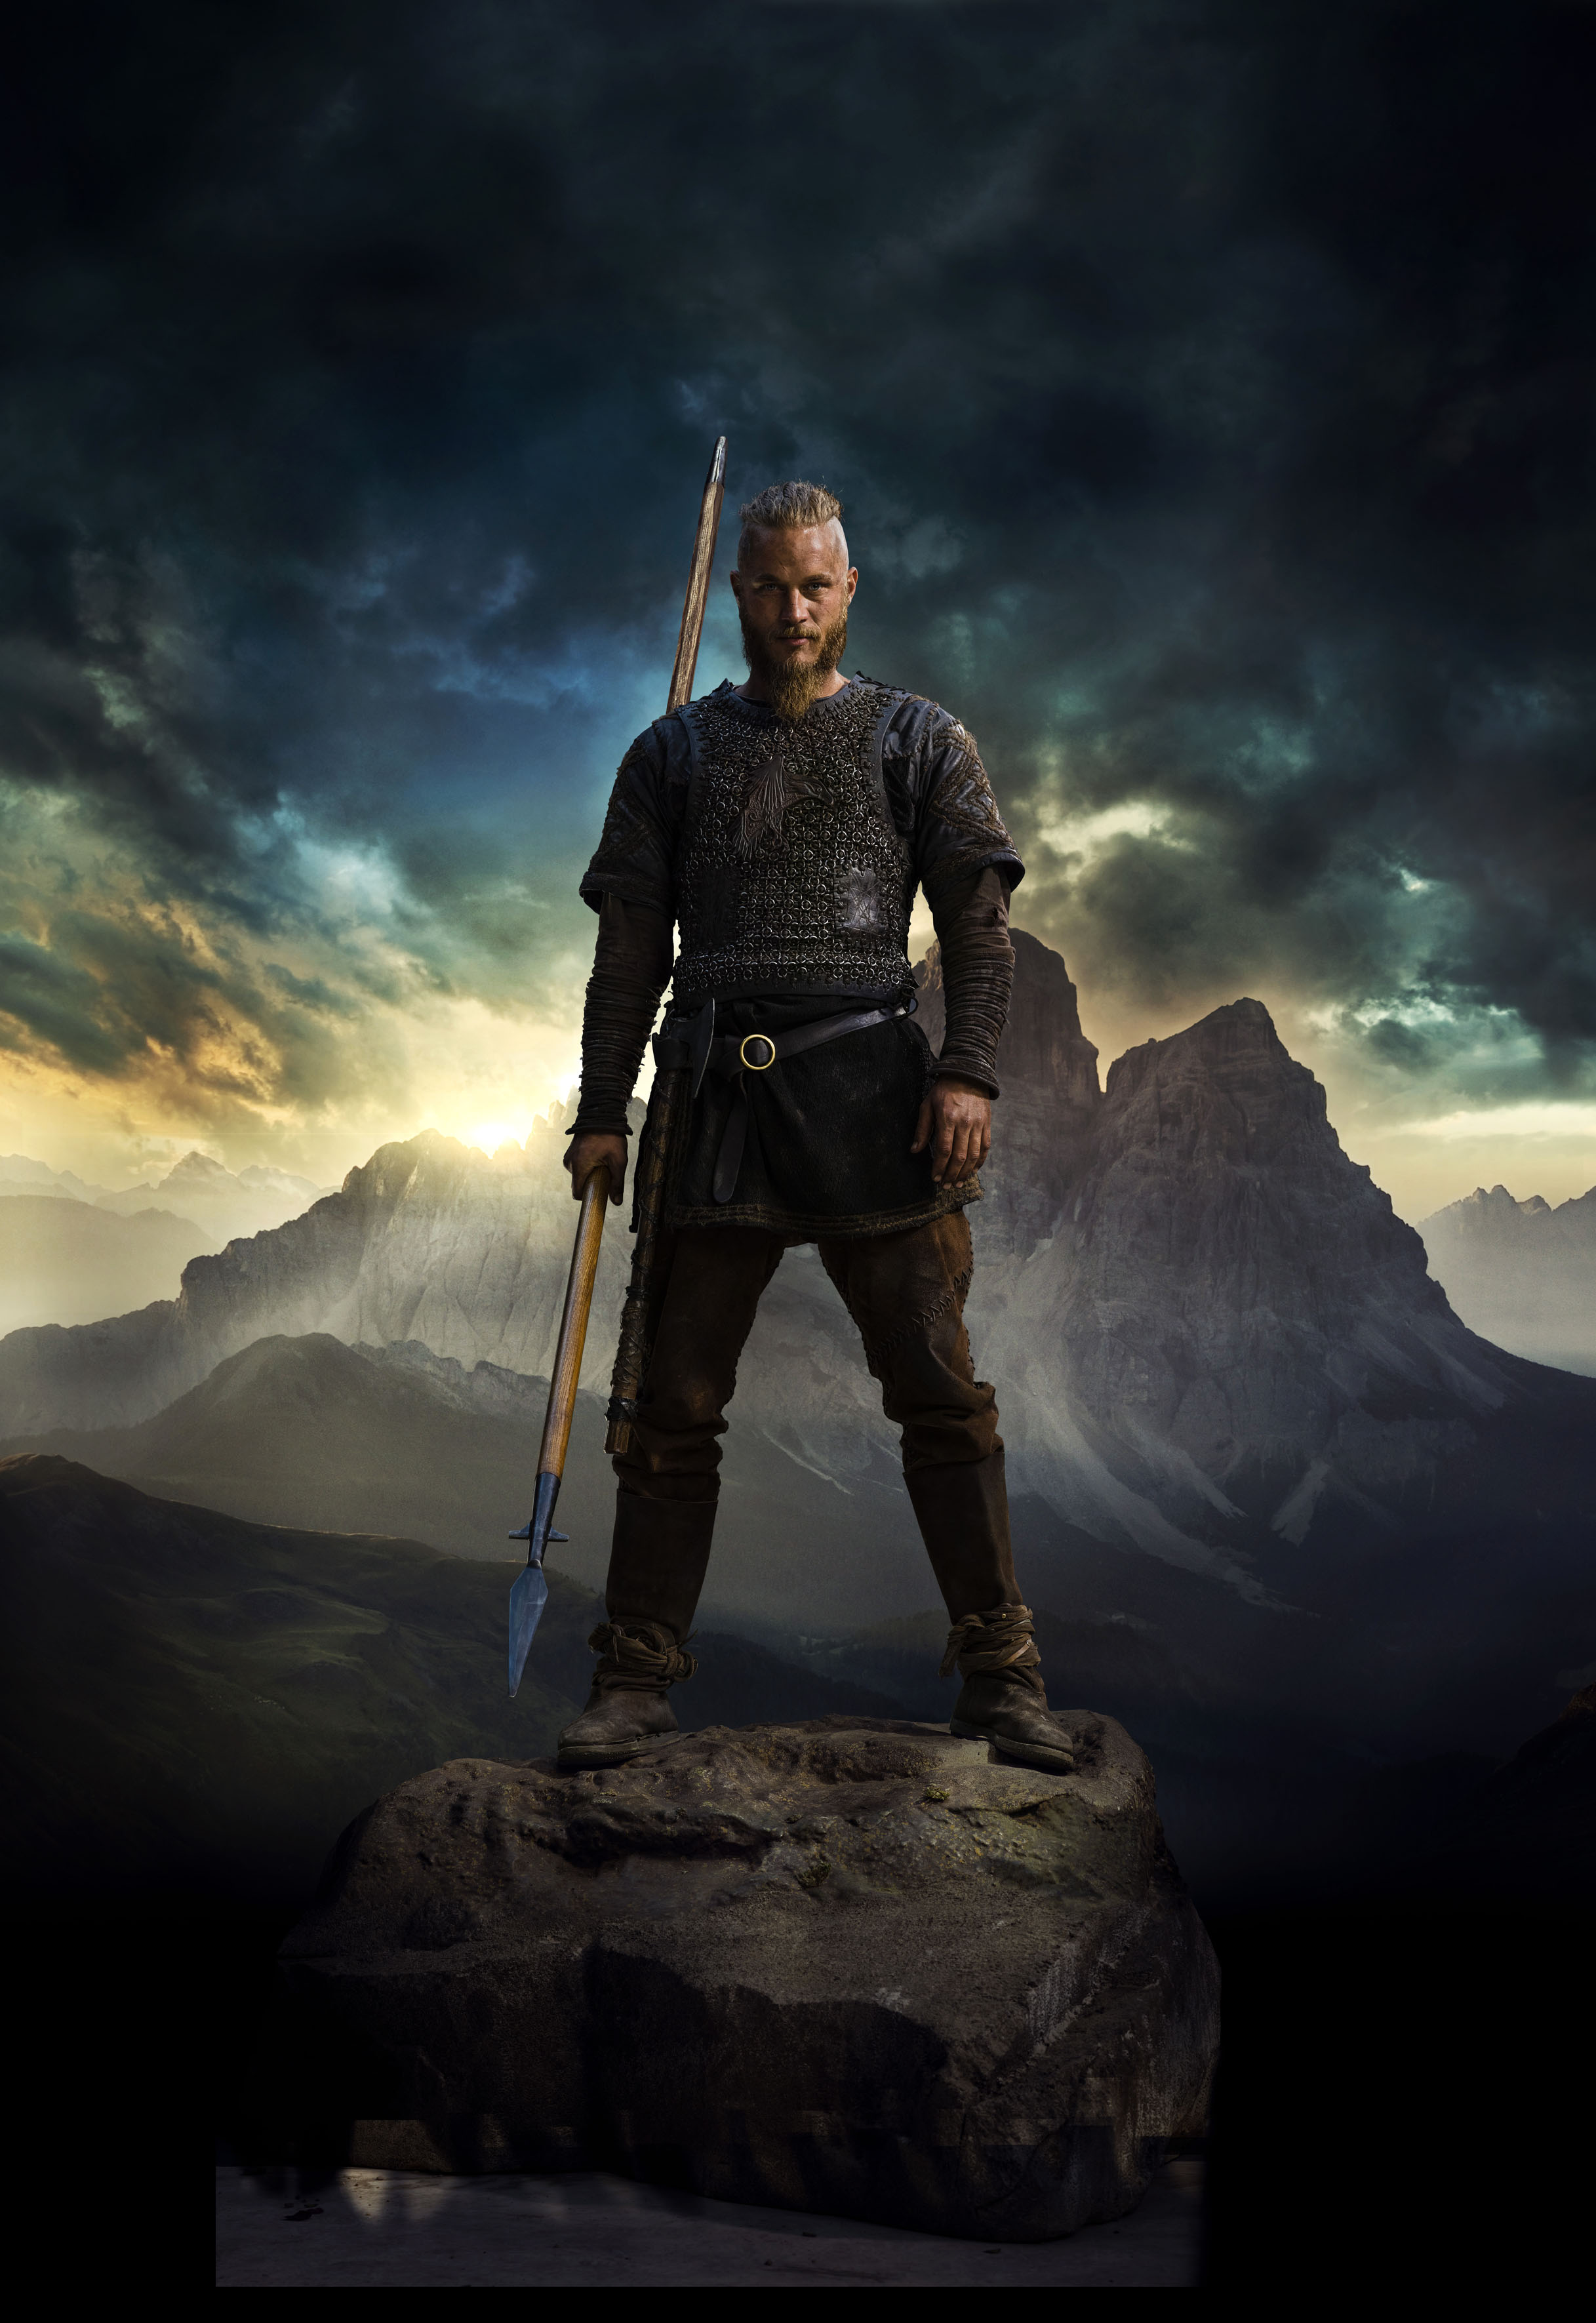 Vikings Season 2 Ragnar Lothbrok official picture